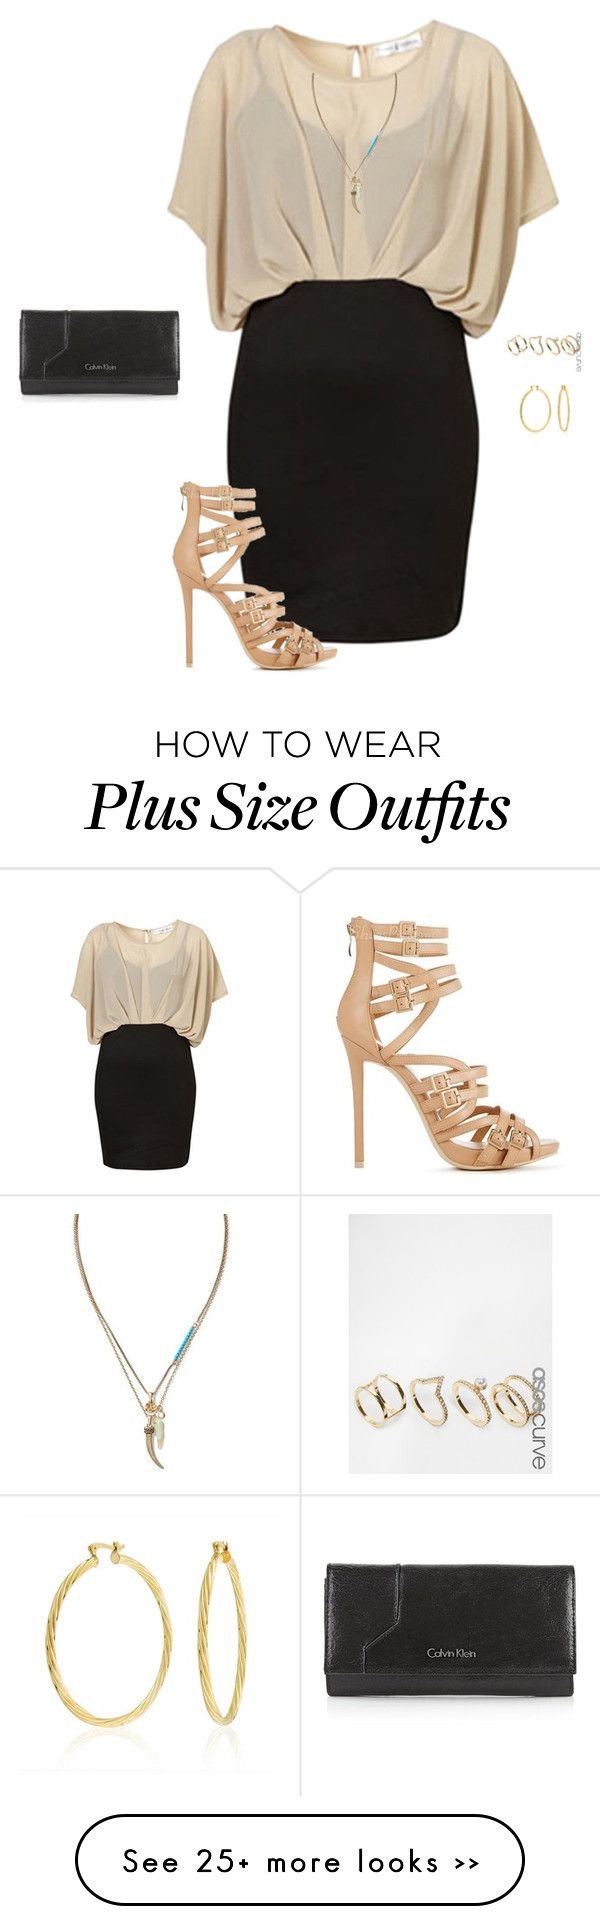 """Celebrating One Of Polyvore's Newest Features!"" by hanakdudley on Polyvore"